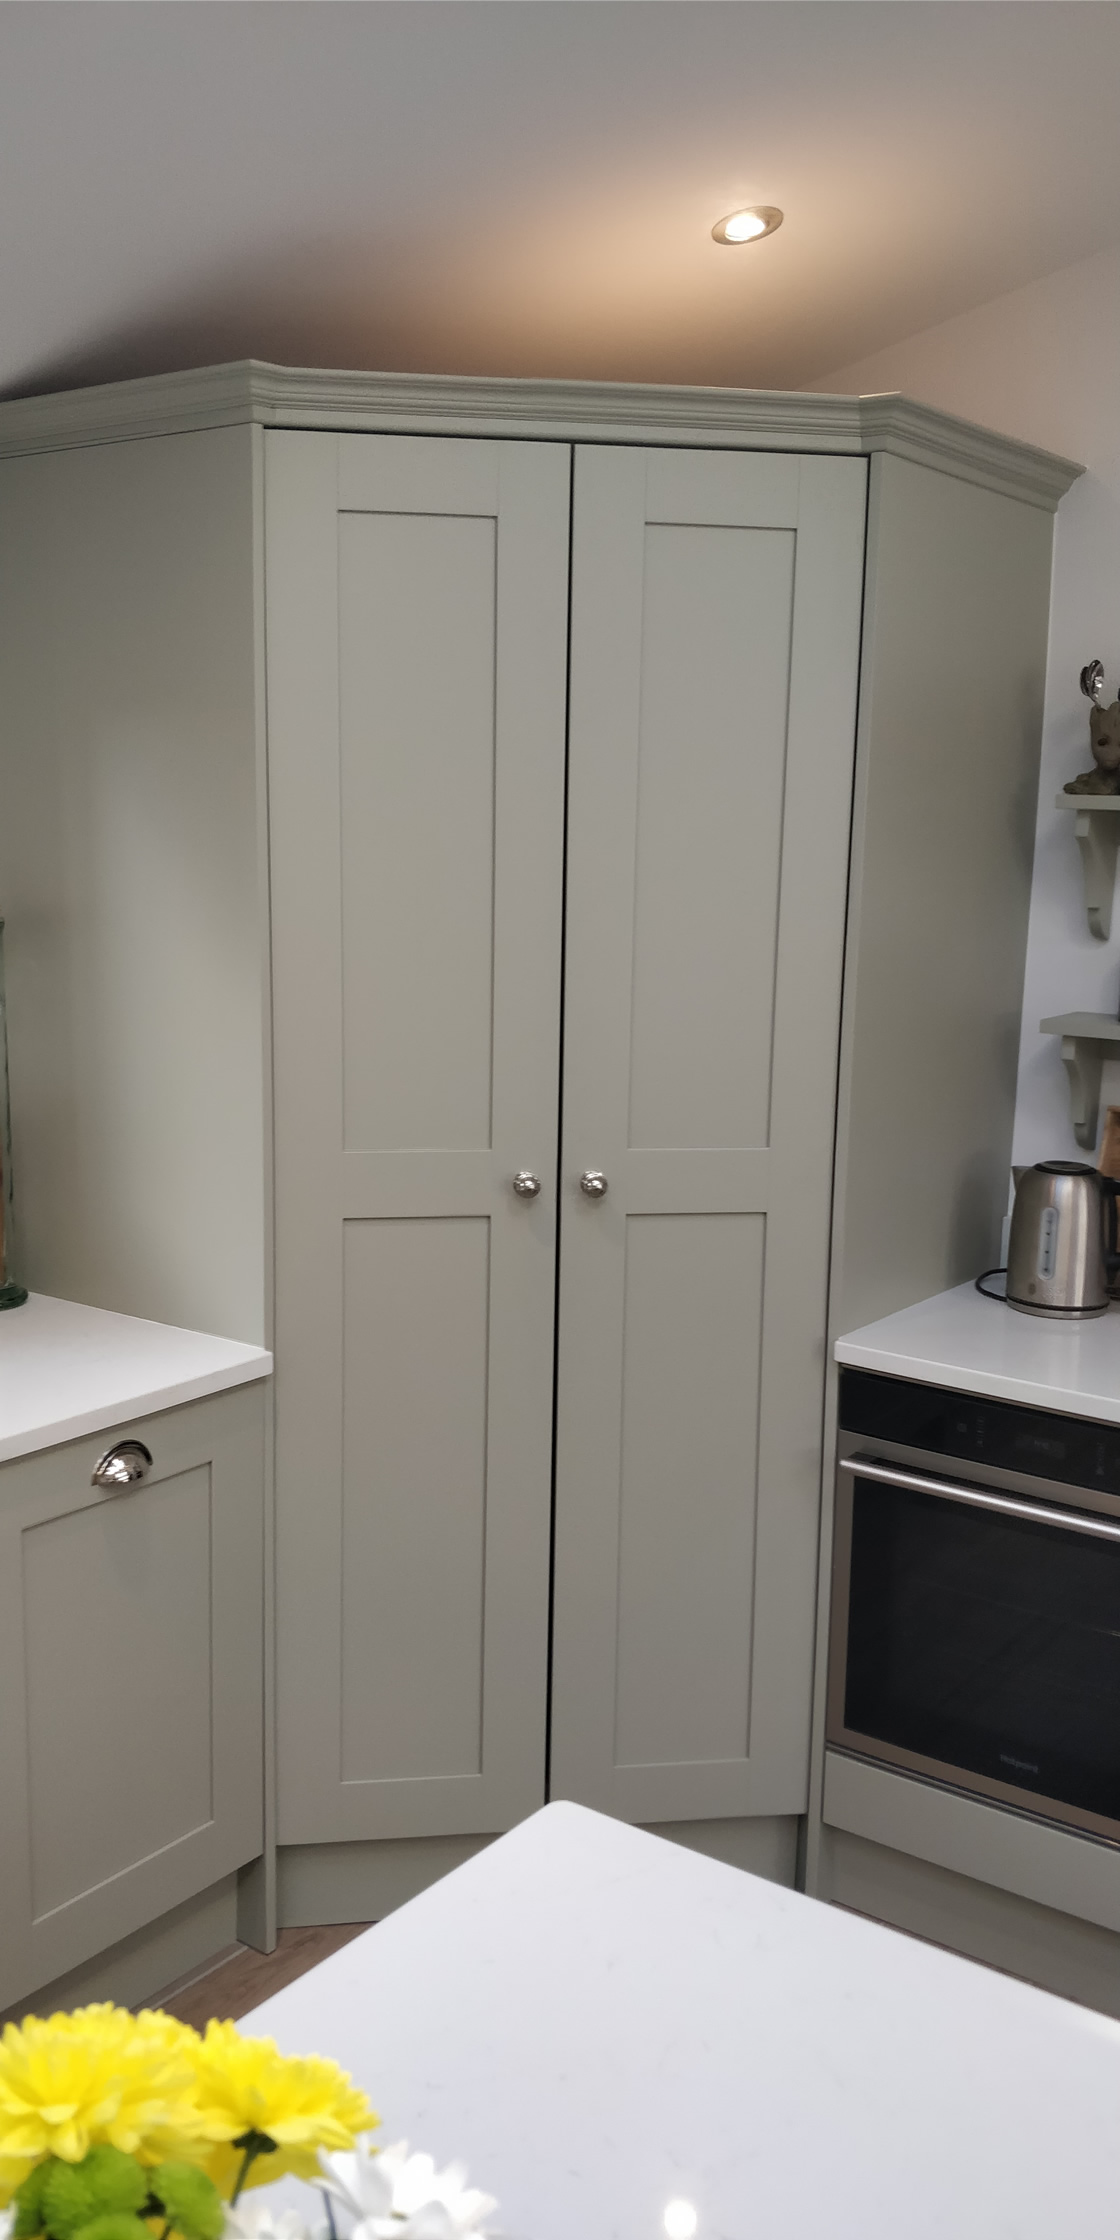 Large Crawley Bespoke Kitchen Larder Design